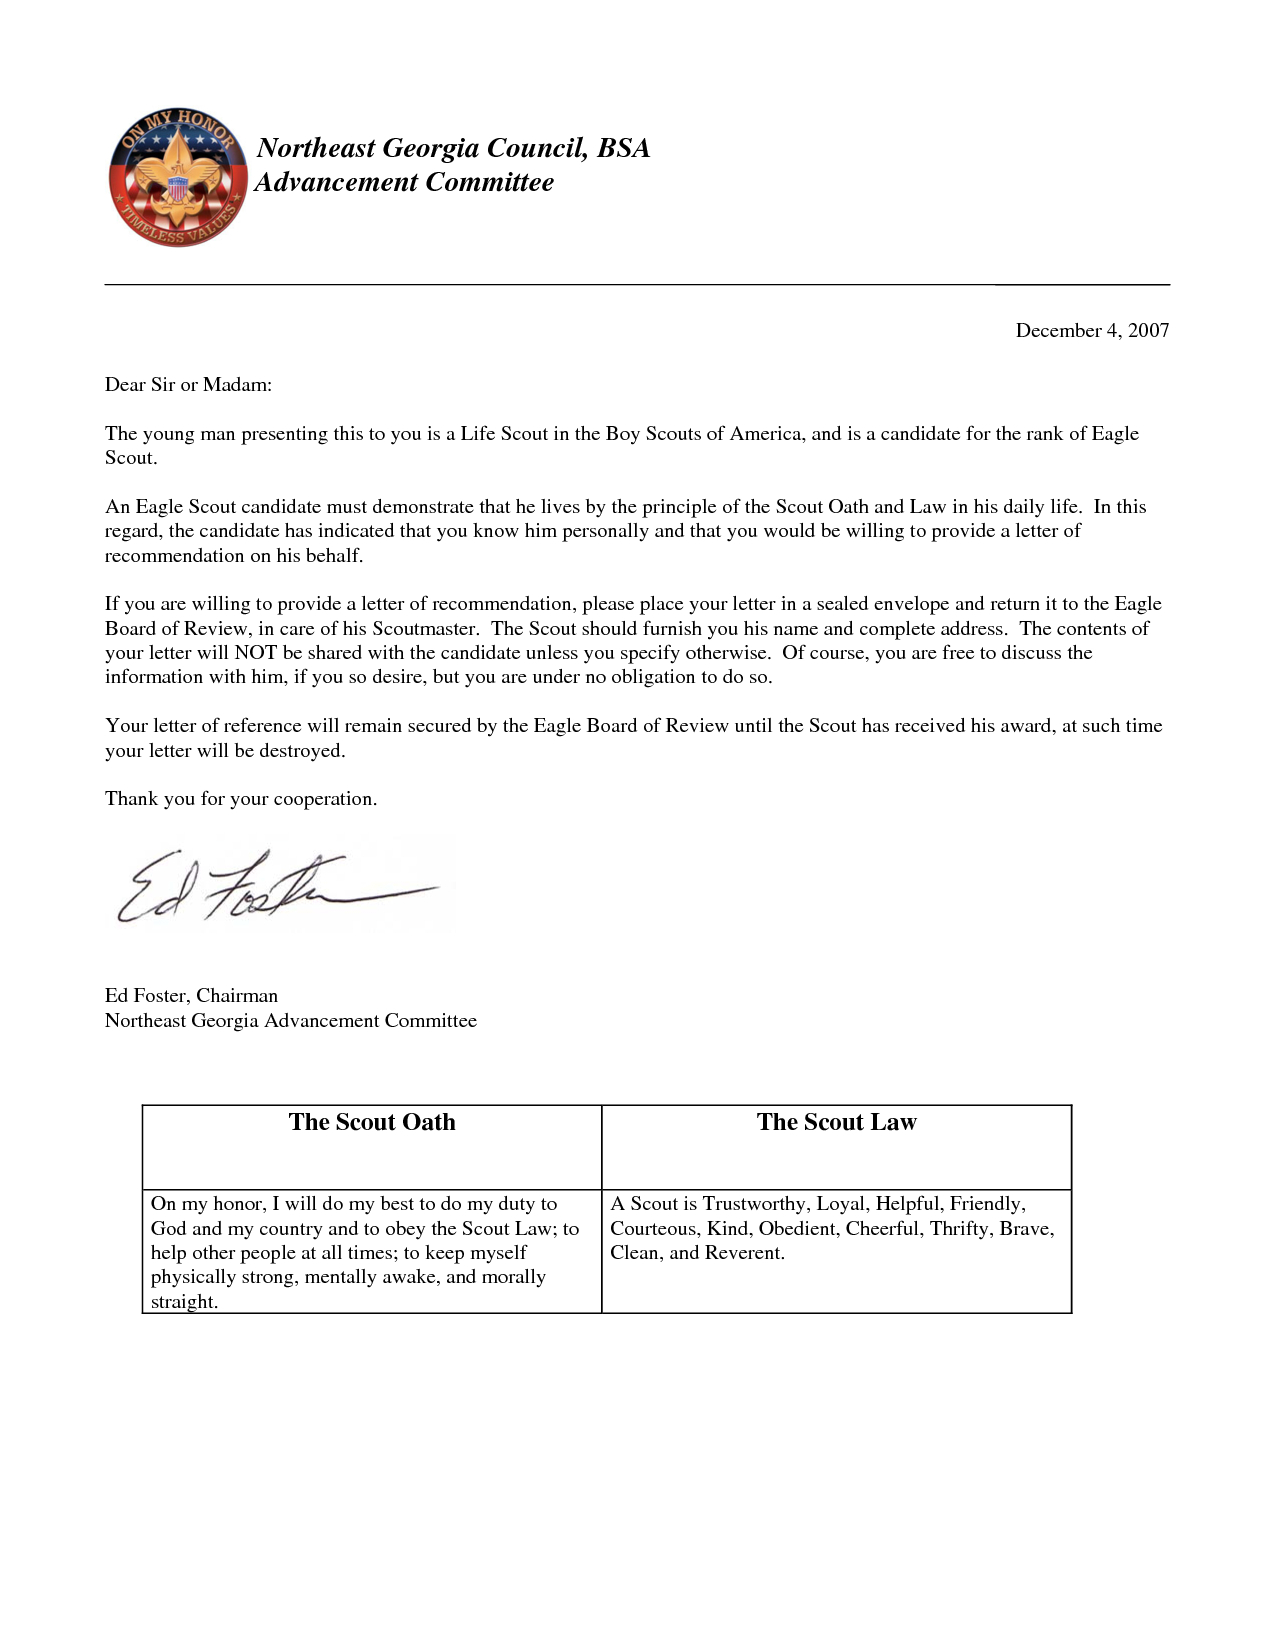 Eagle Scout Recommendation Letter Template - Eagle Scout Candidate Letter Of Re Mendation Acurnamedia